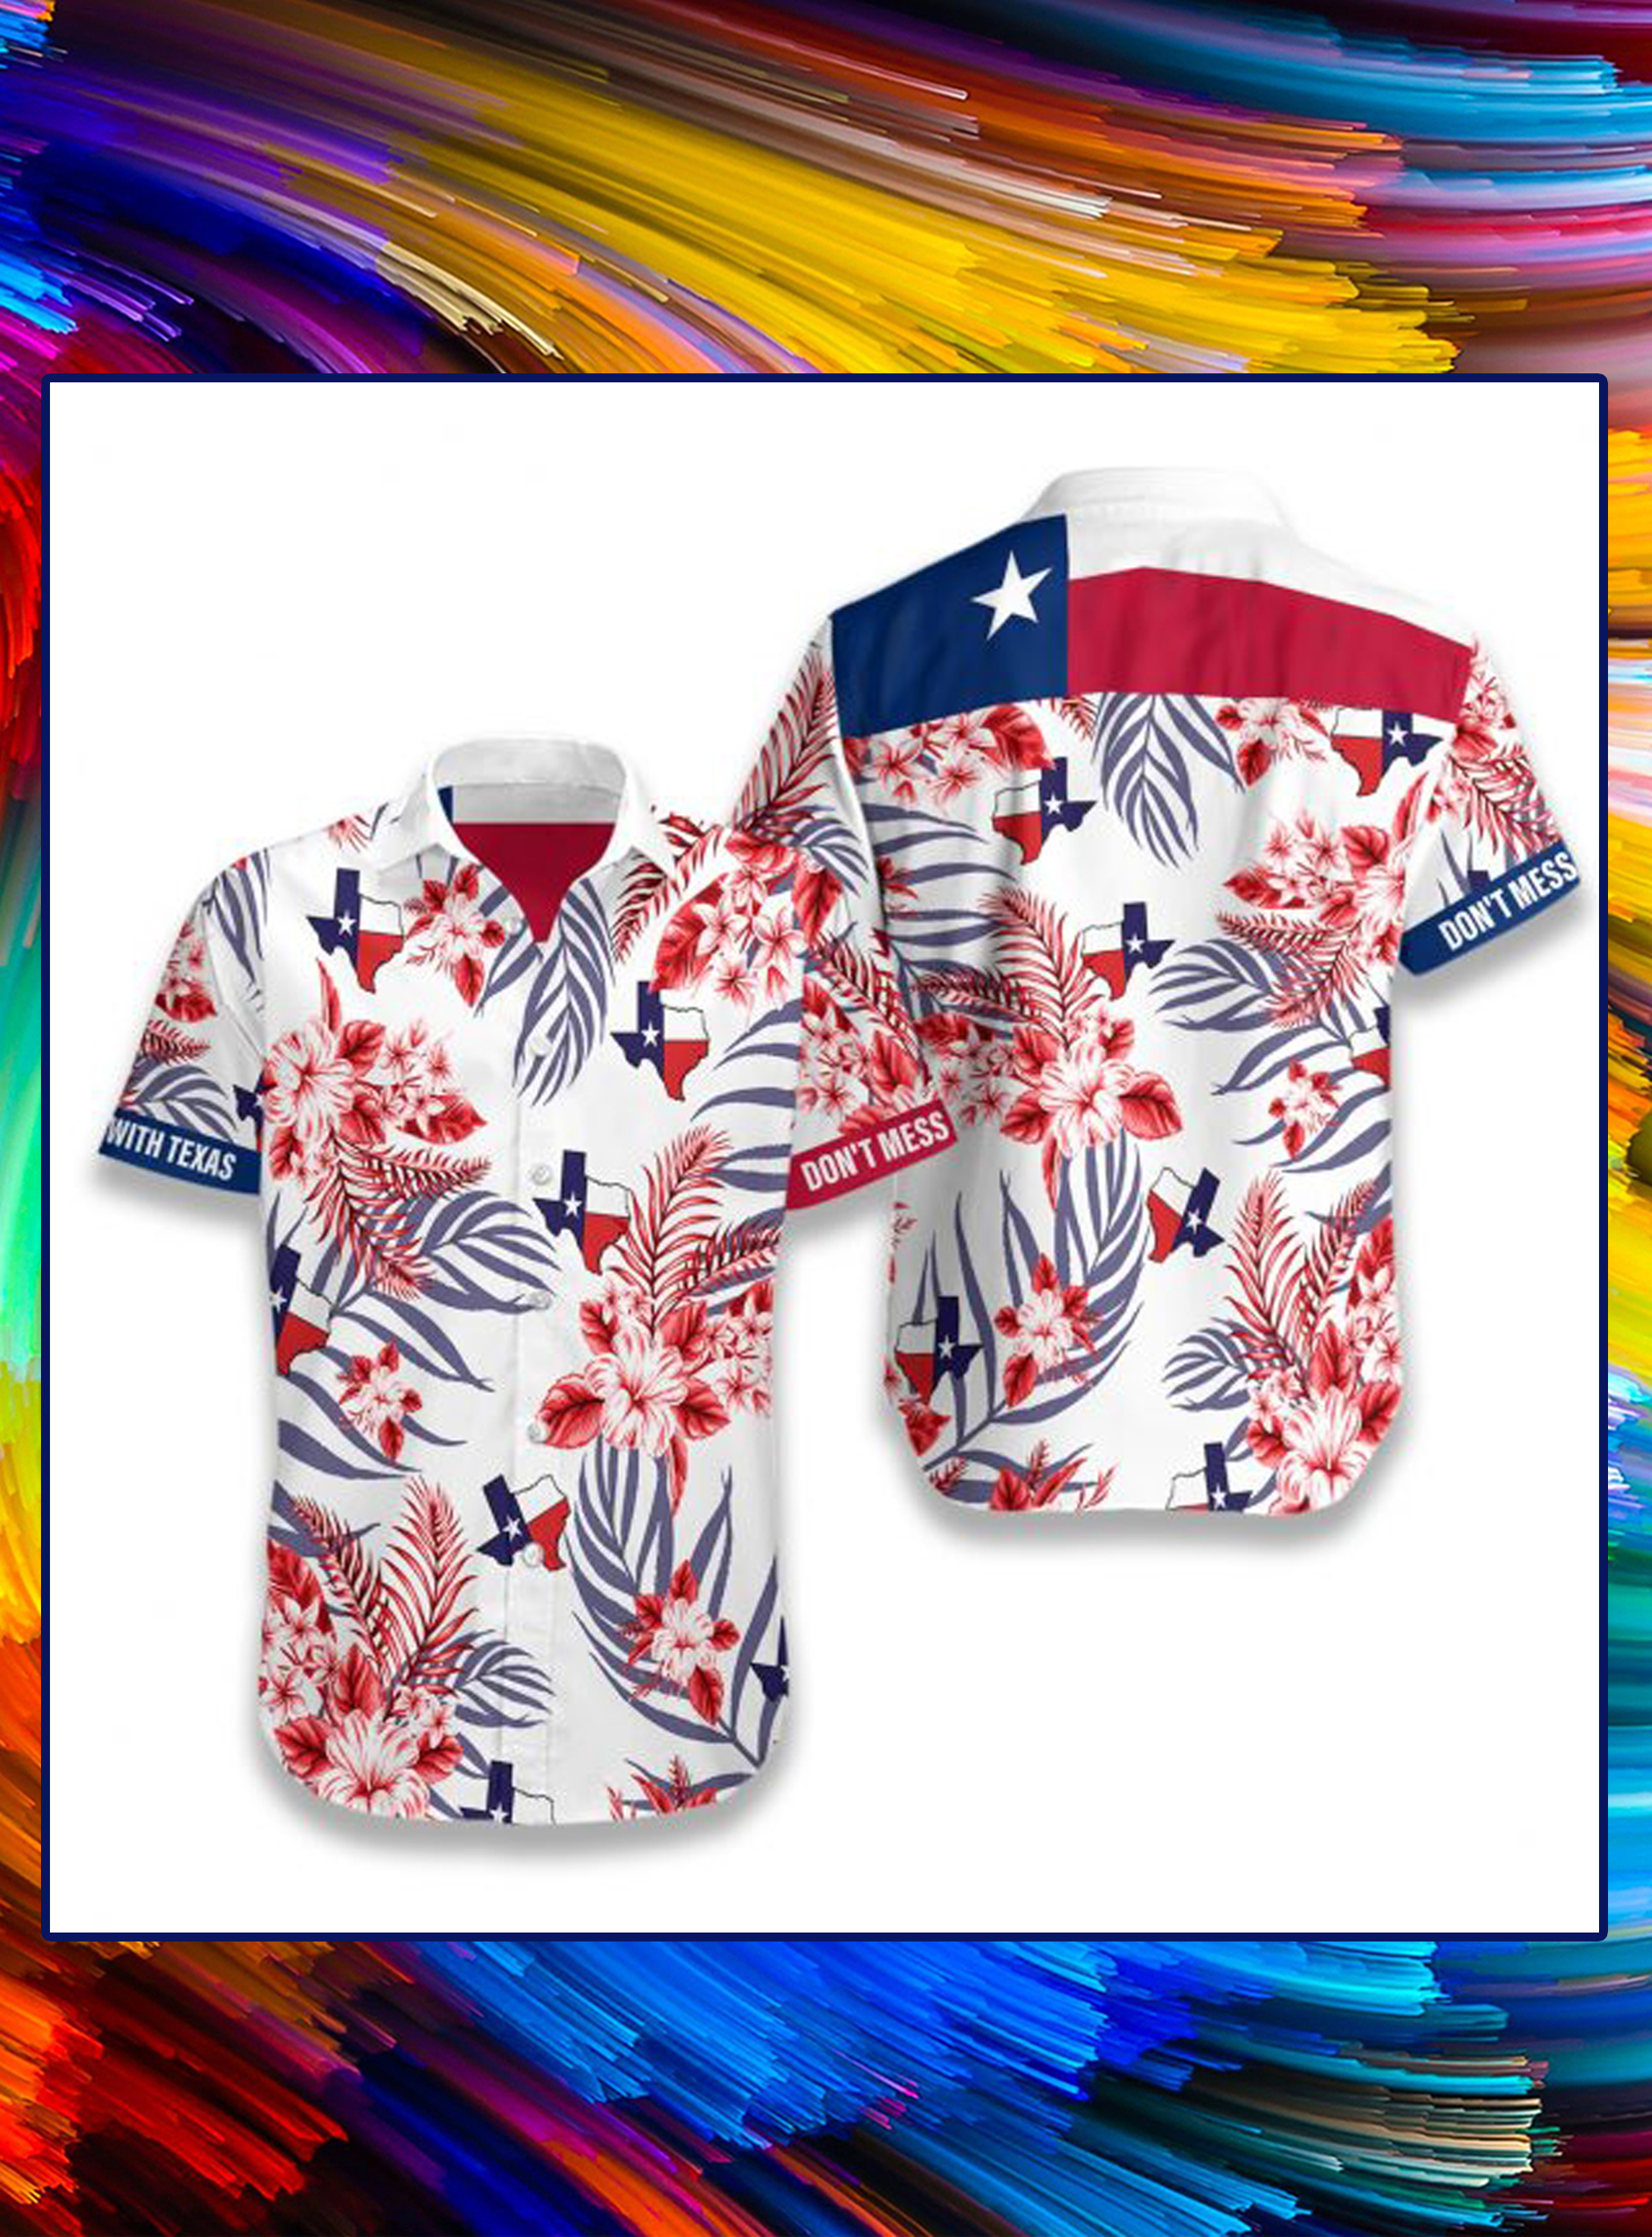 Lone star nation texas hawaiian shirt - Picture 1